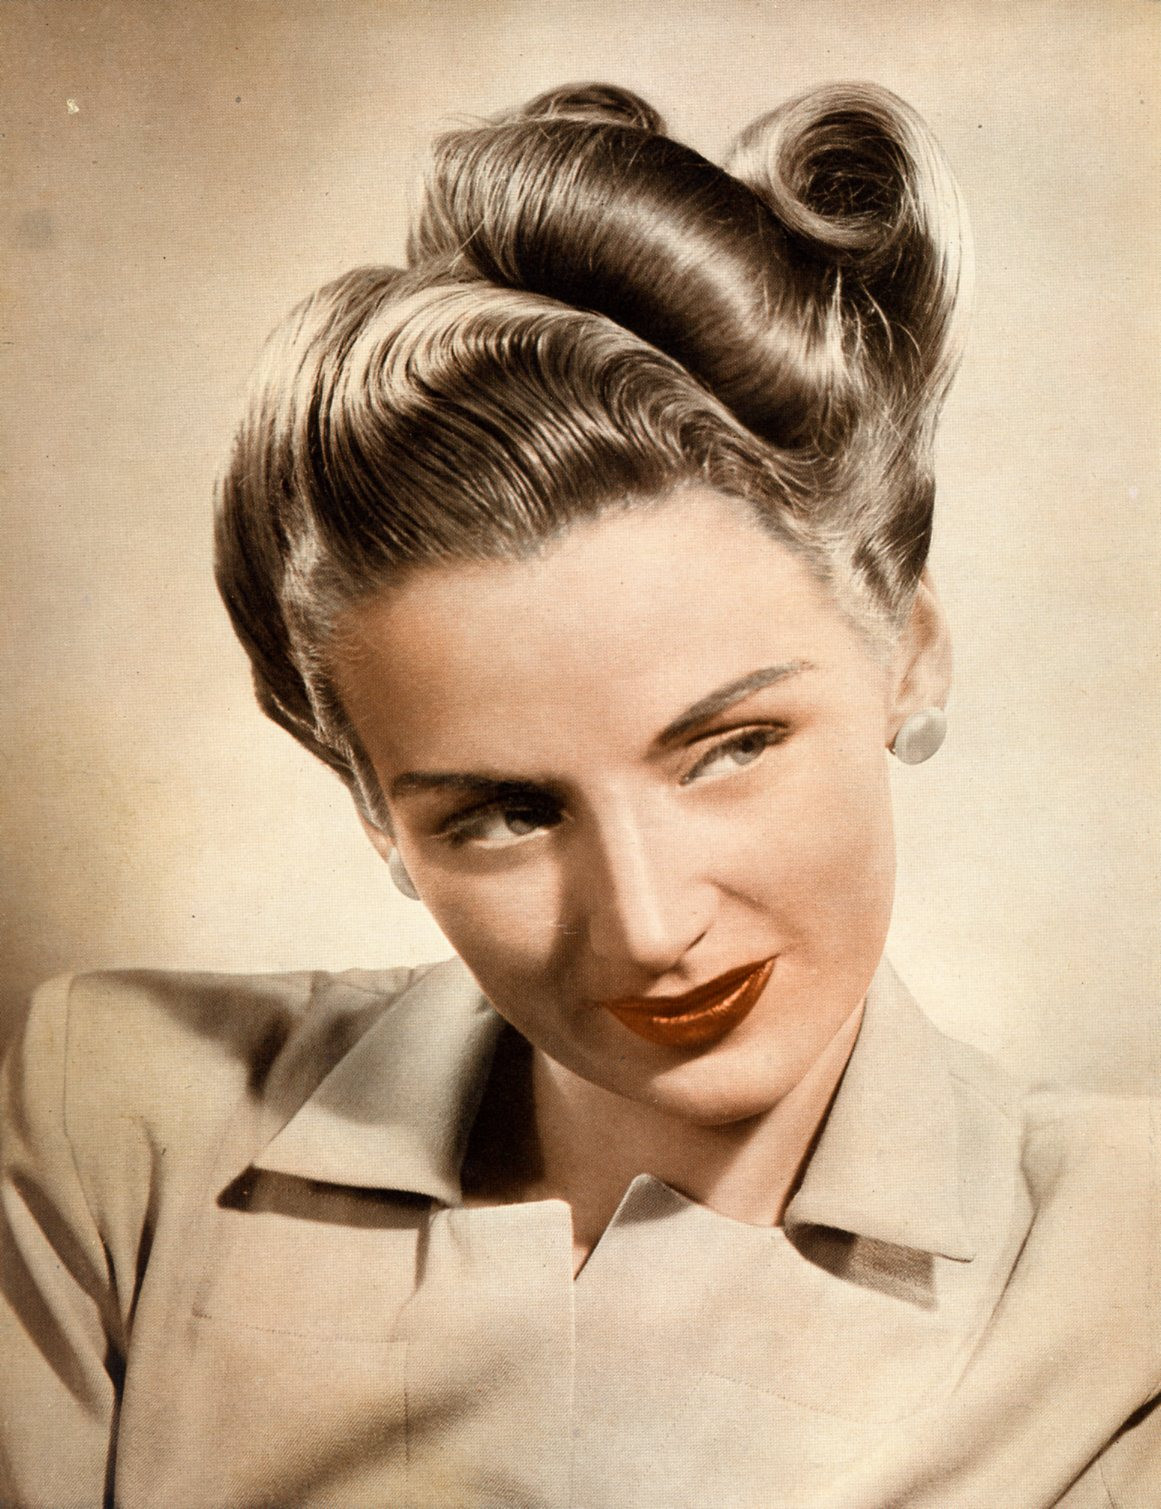 Best ideas about Vintage Updos Hairstyles . Save or Pin 20 Vintage Hairstyles for Long Hair in 2016 MagMent Now.